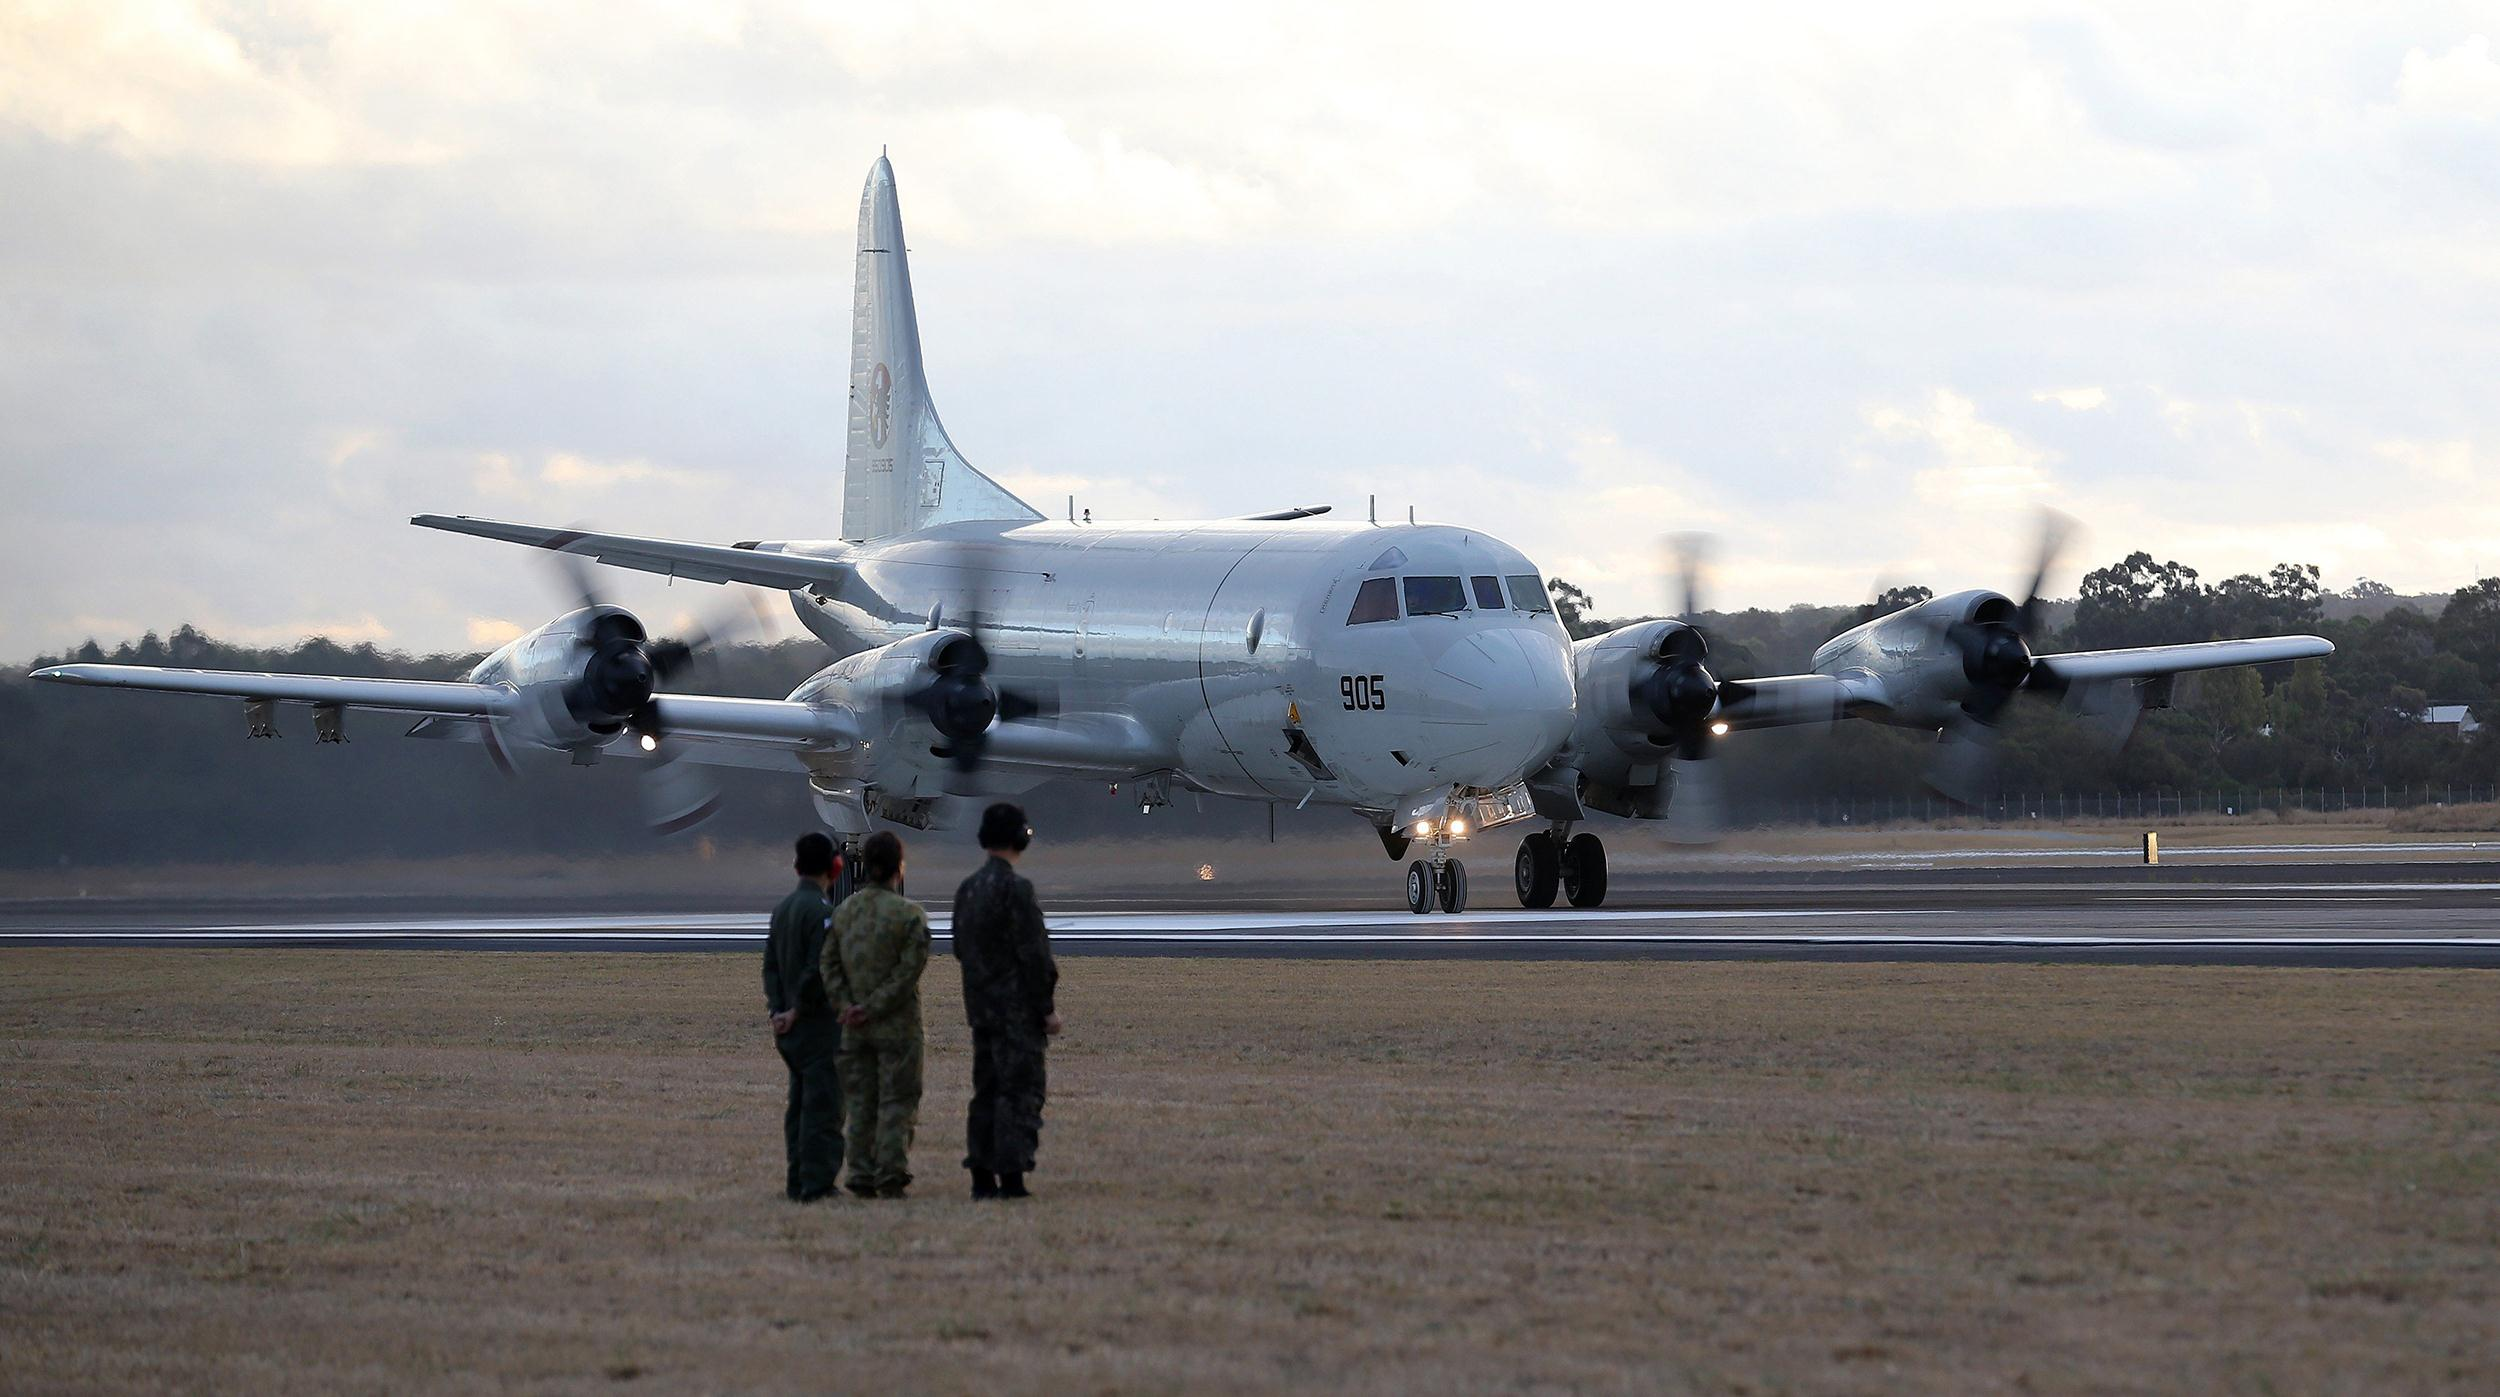 Image: Ground crew look on as a South Korean Navy P-3C Orion taxis after returning from a sortie